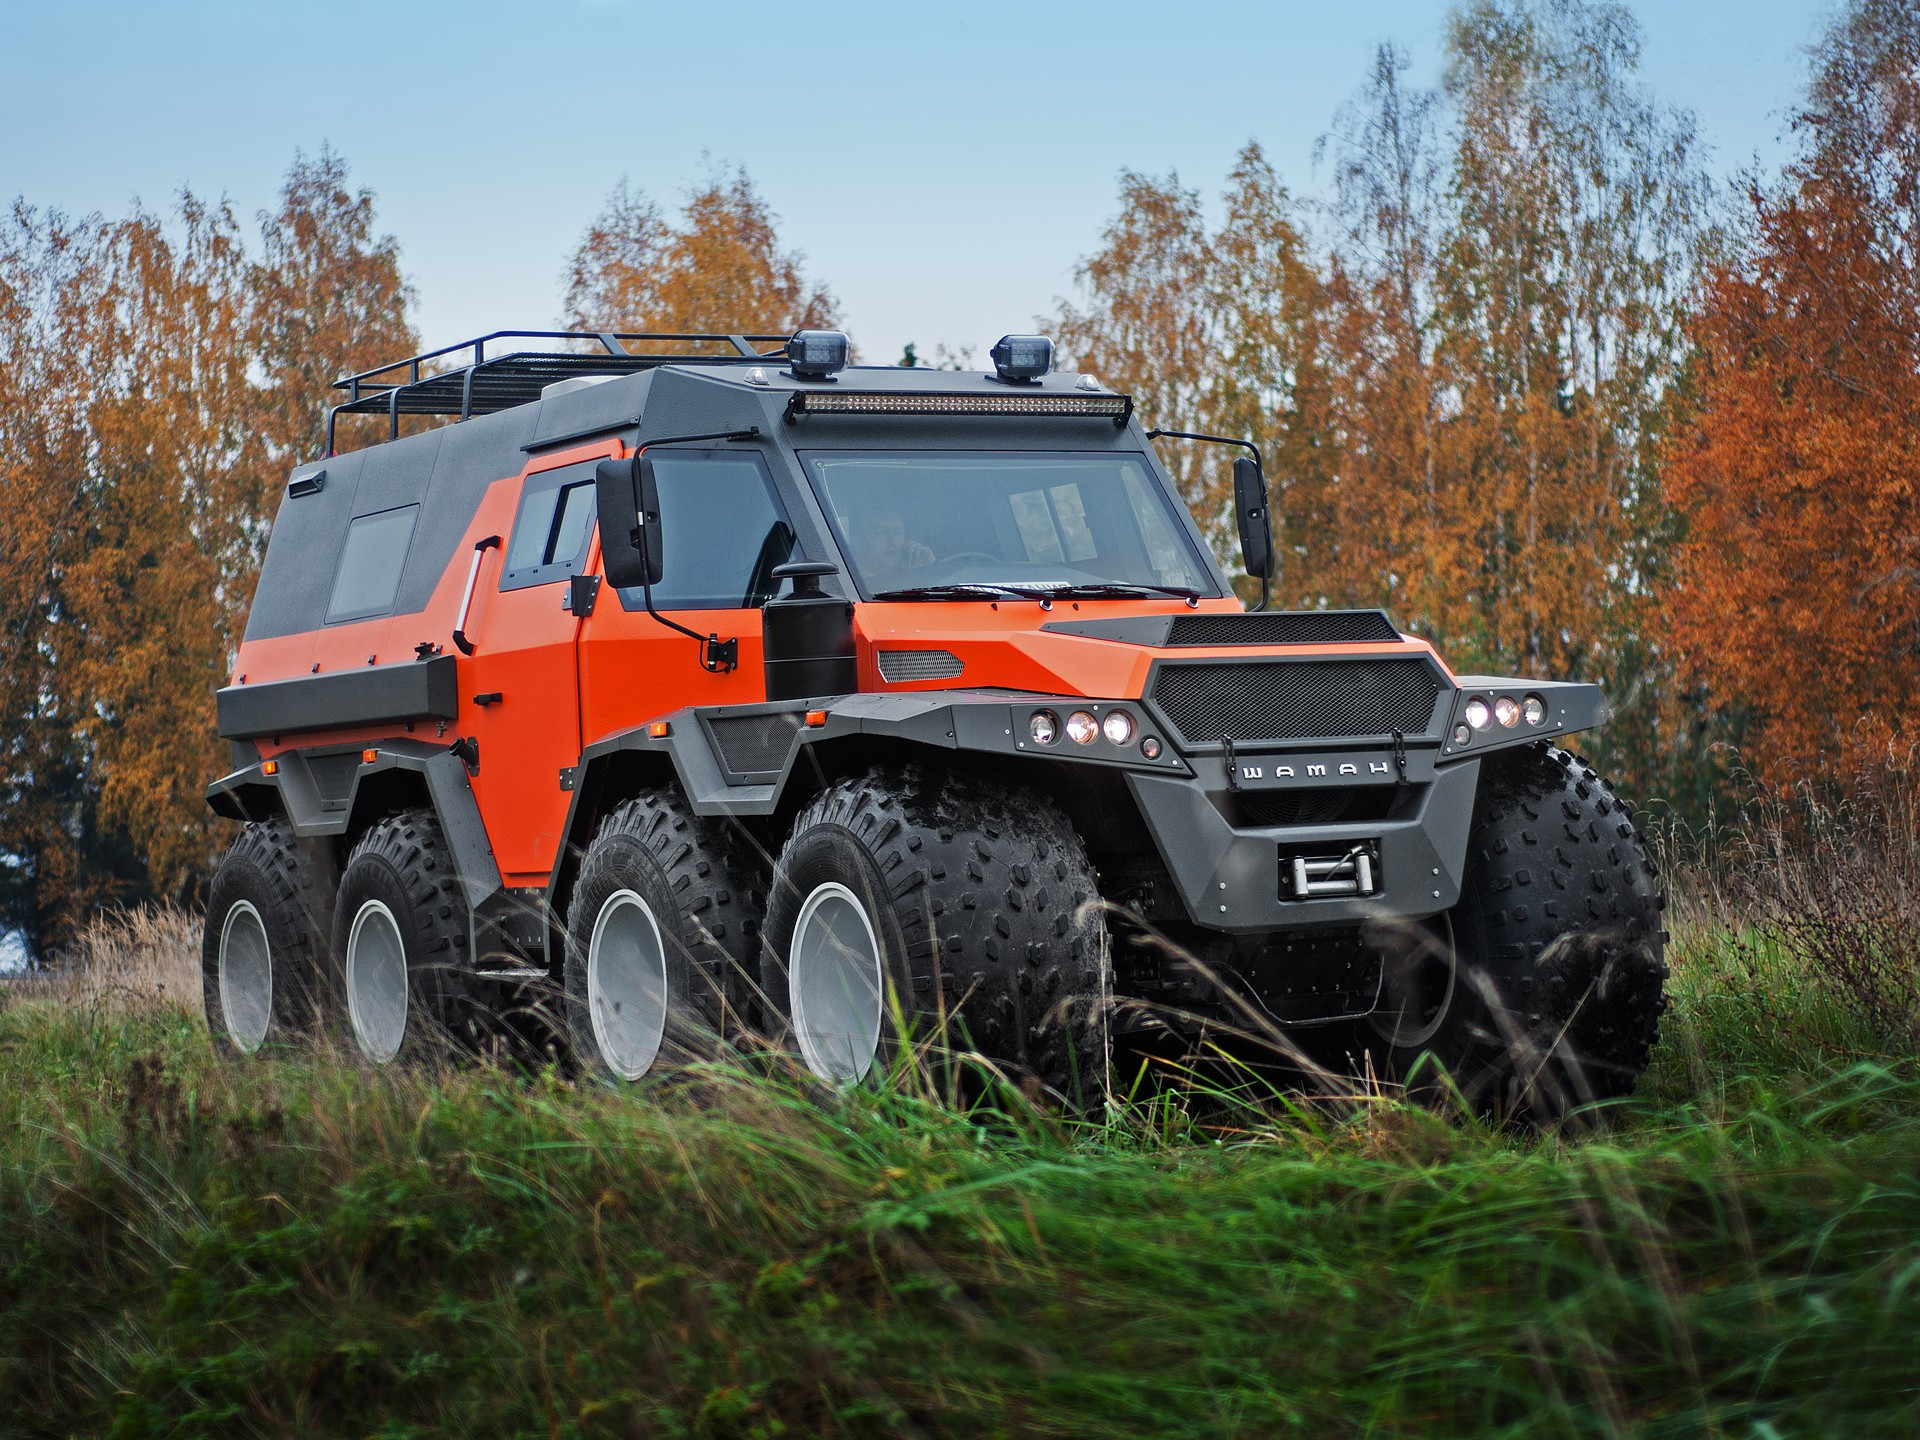 Moscow-based carmaker AVTOROS has come to the 2019 Dubai International Motor Show with its own all-terrain vehicle project, the Shaman.